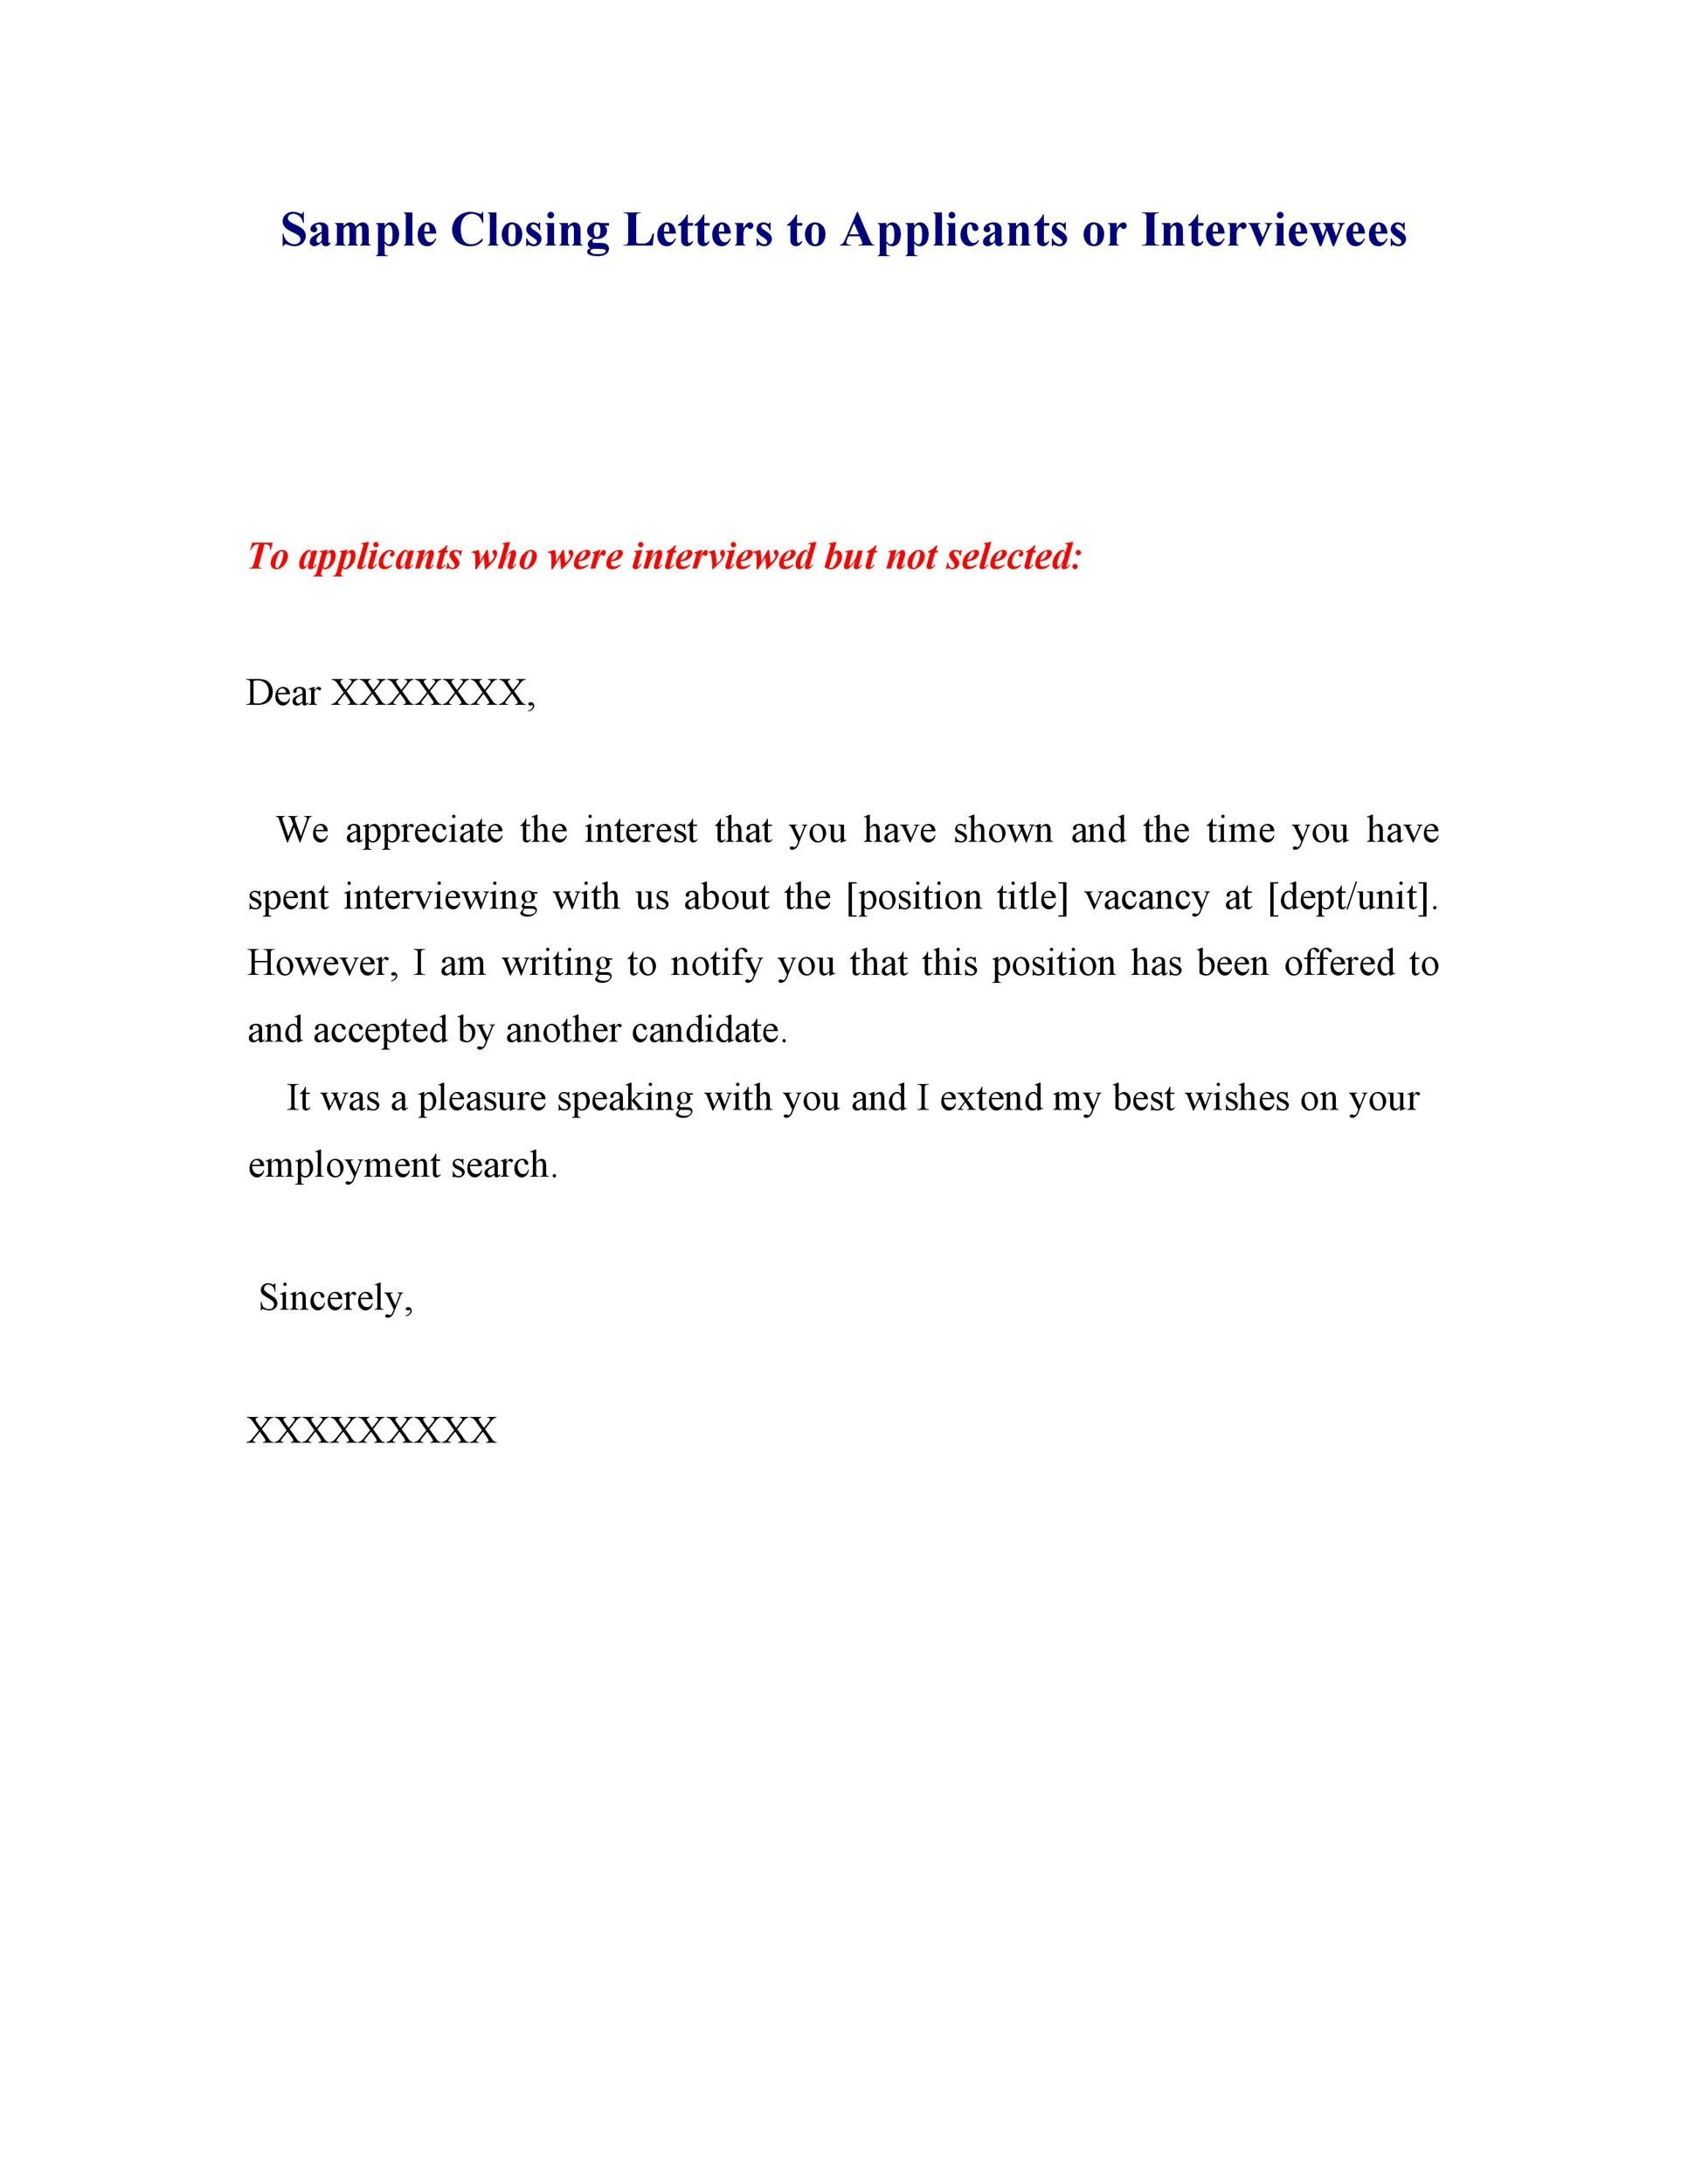 Job Refusal Letter After Interview from templatelab.com